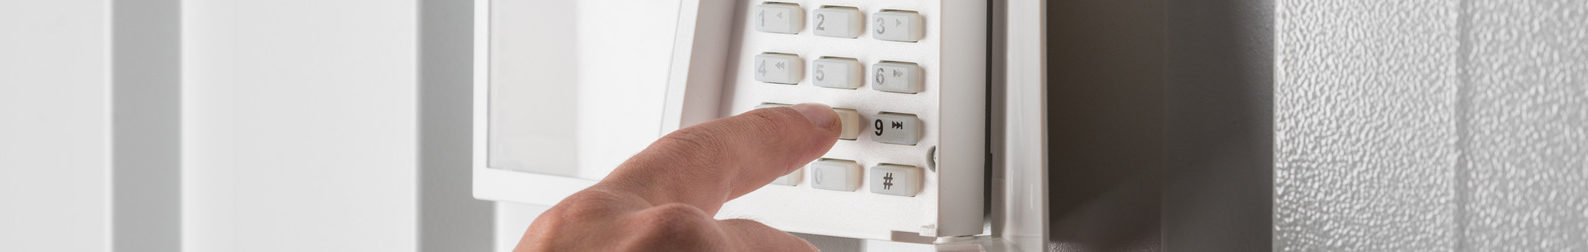 person typing on keypad of security alarm, security system concept